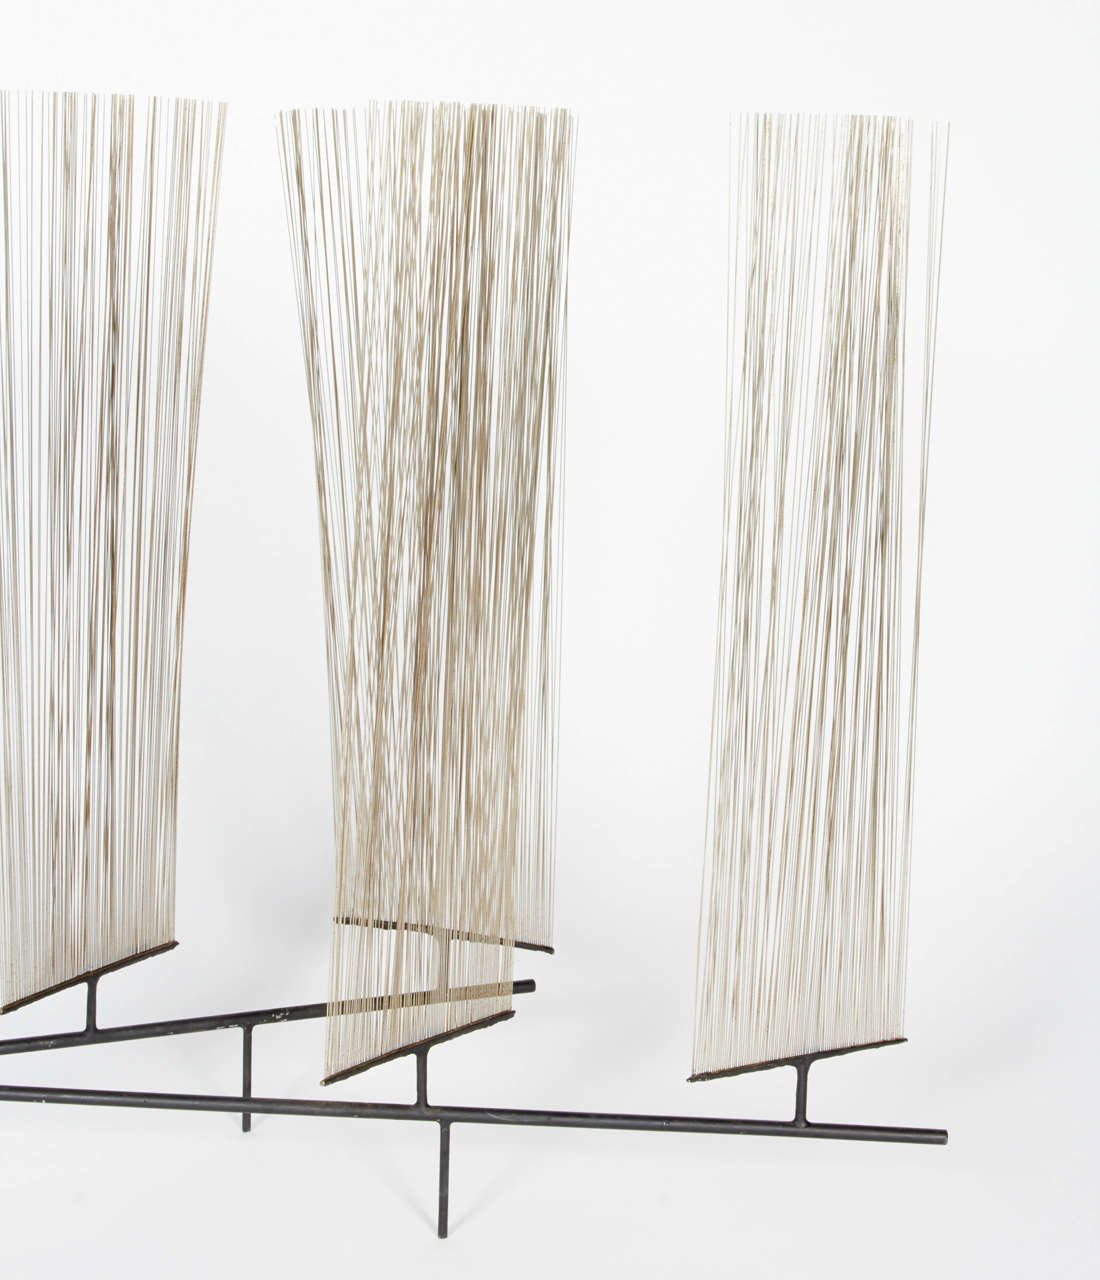 Harry Bertoia Early Wire Form Sculpture, Untitled 5